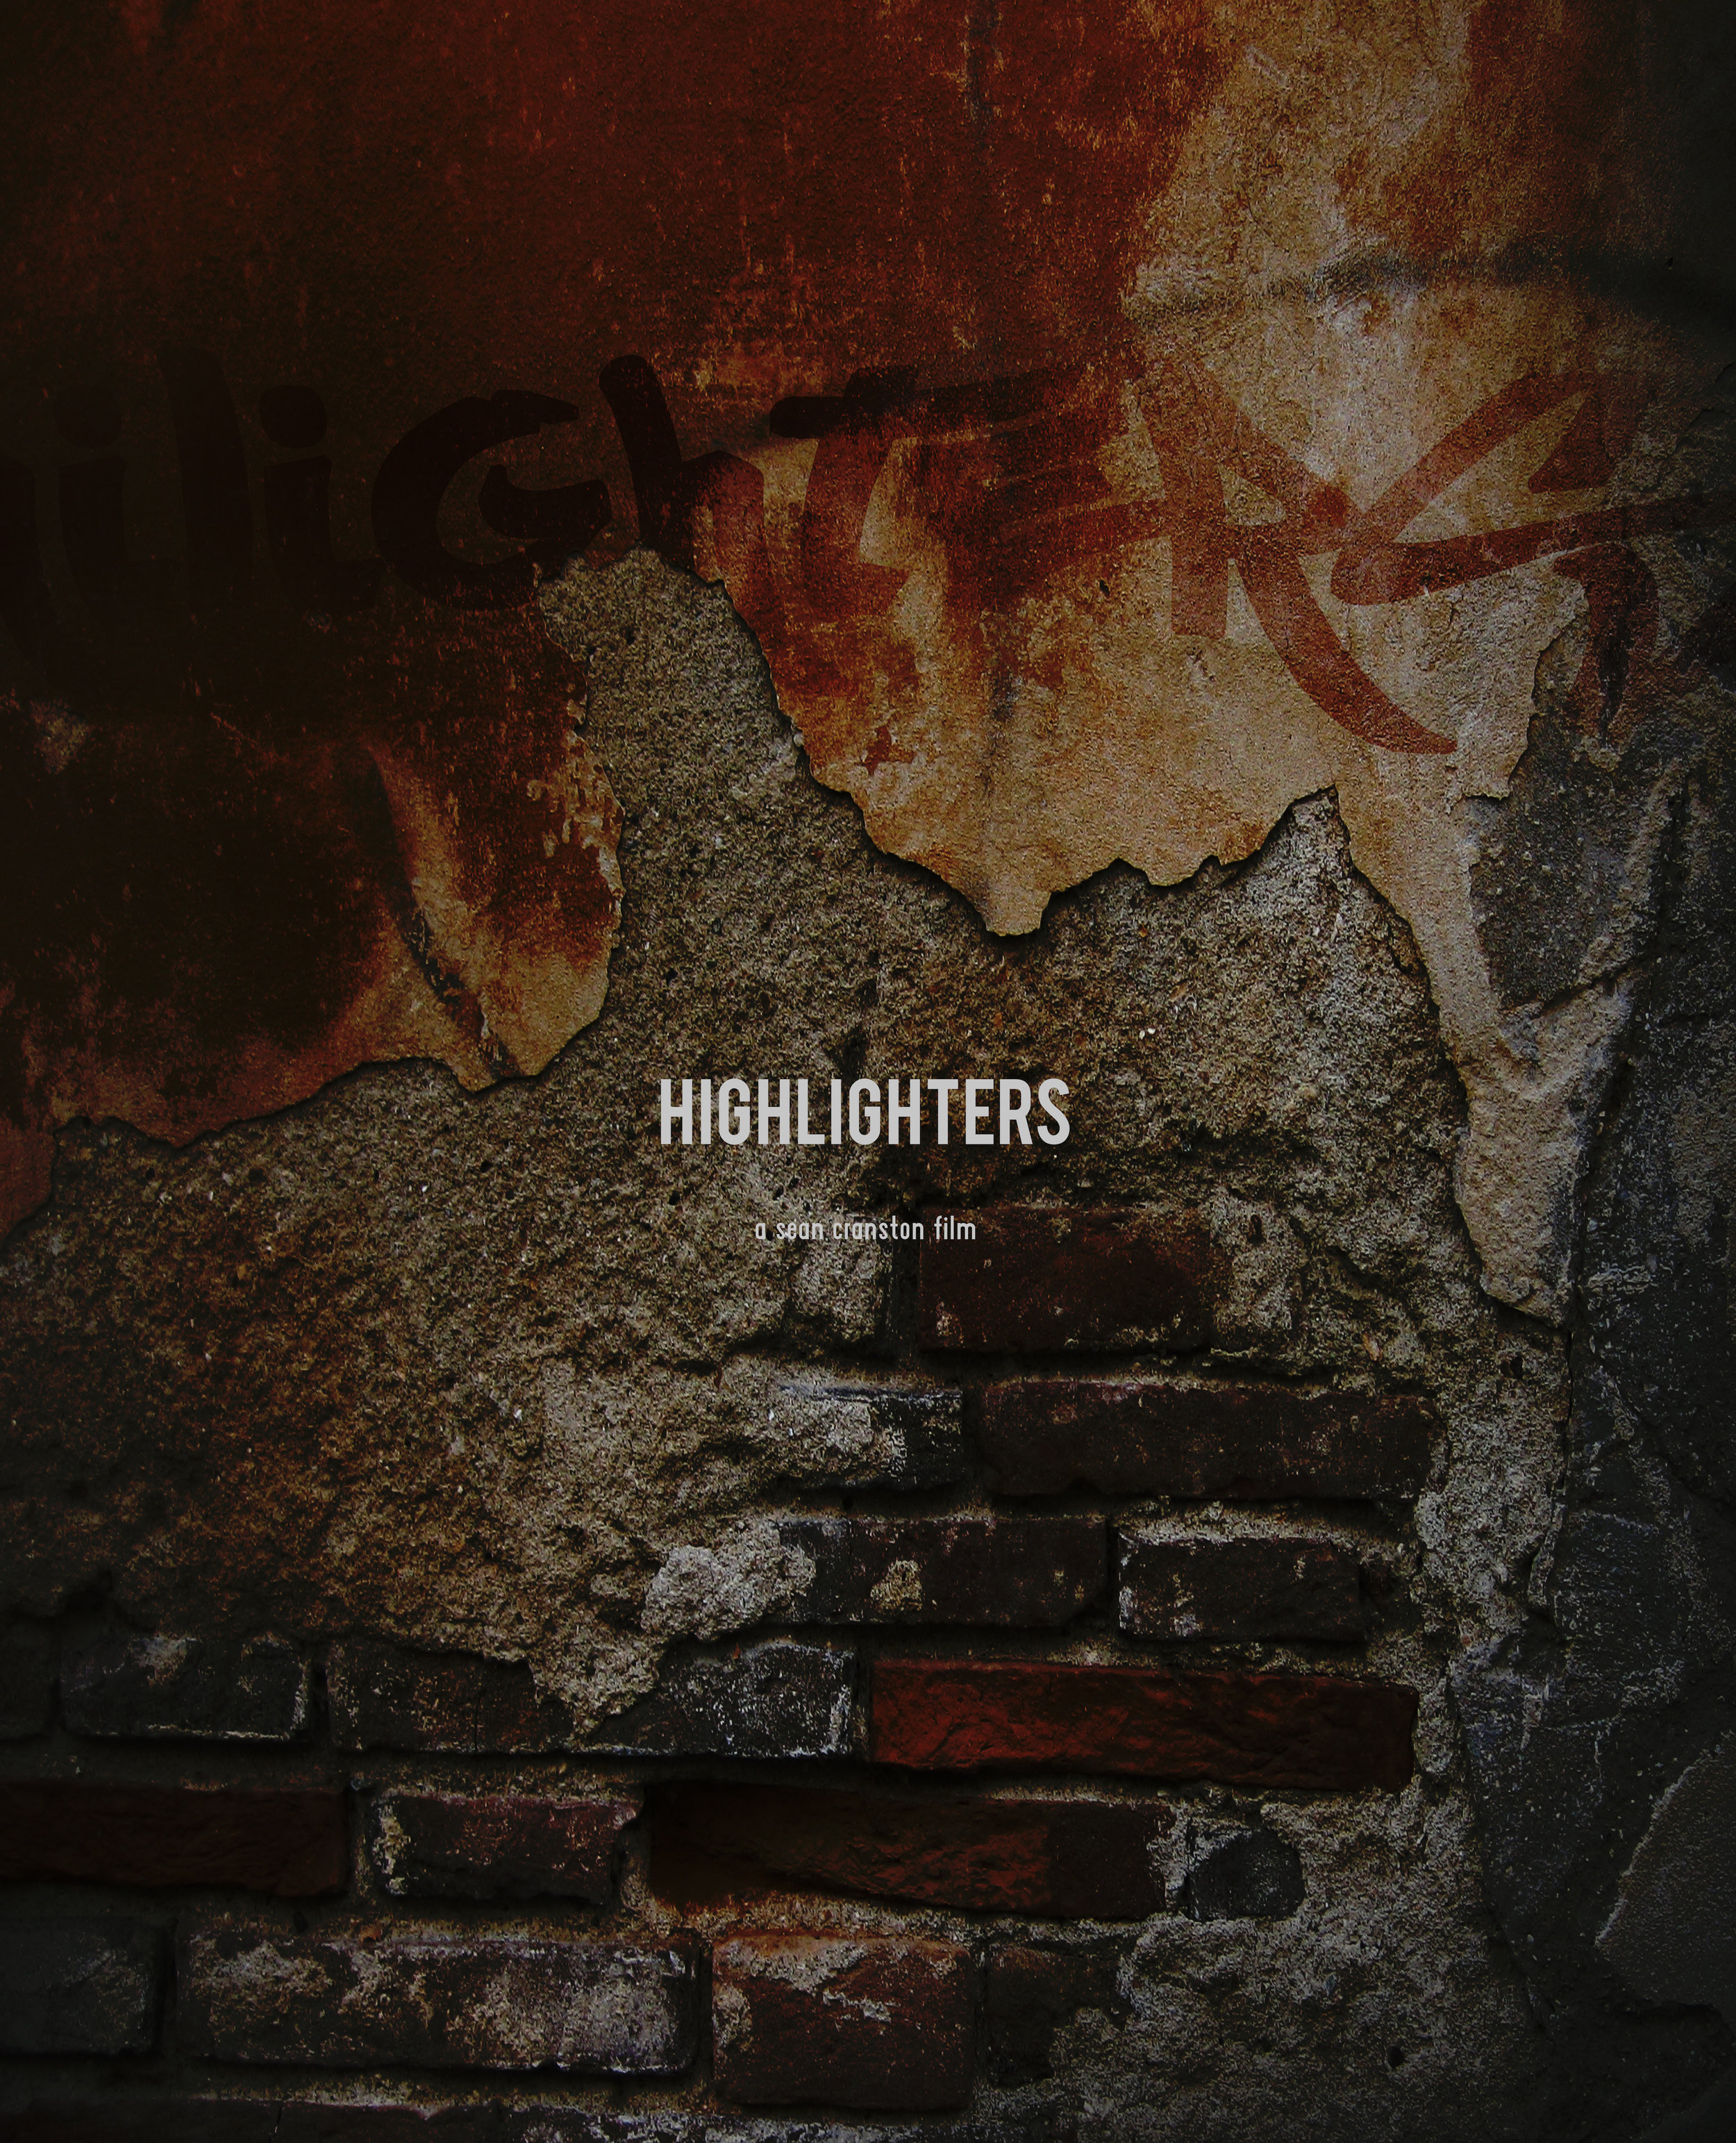 Hilighters